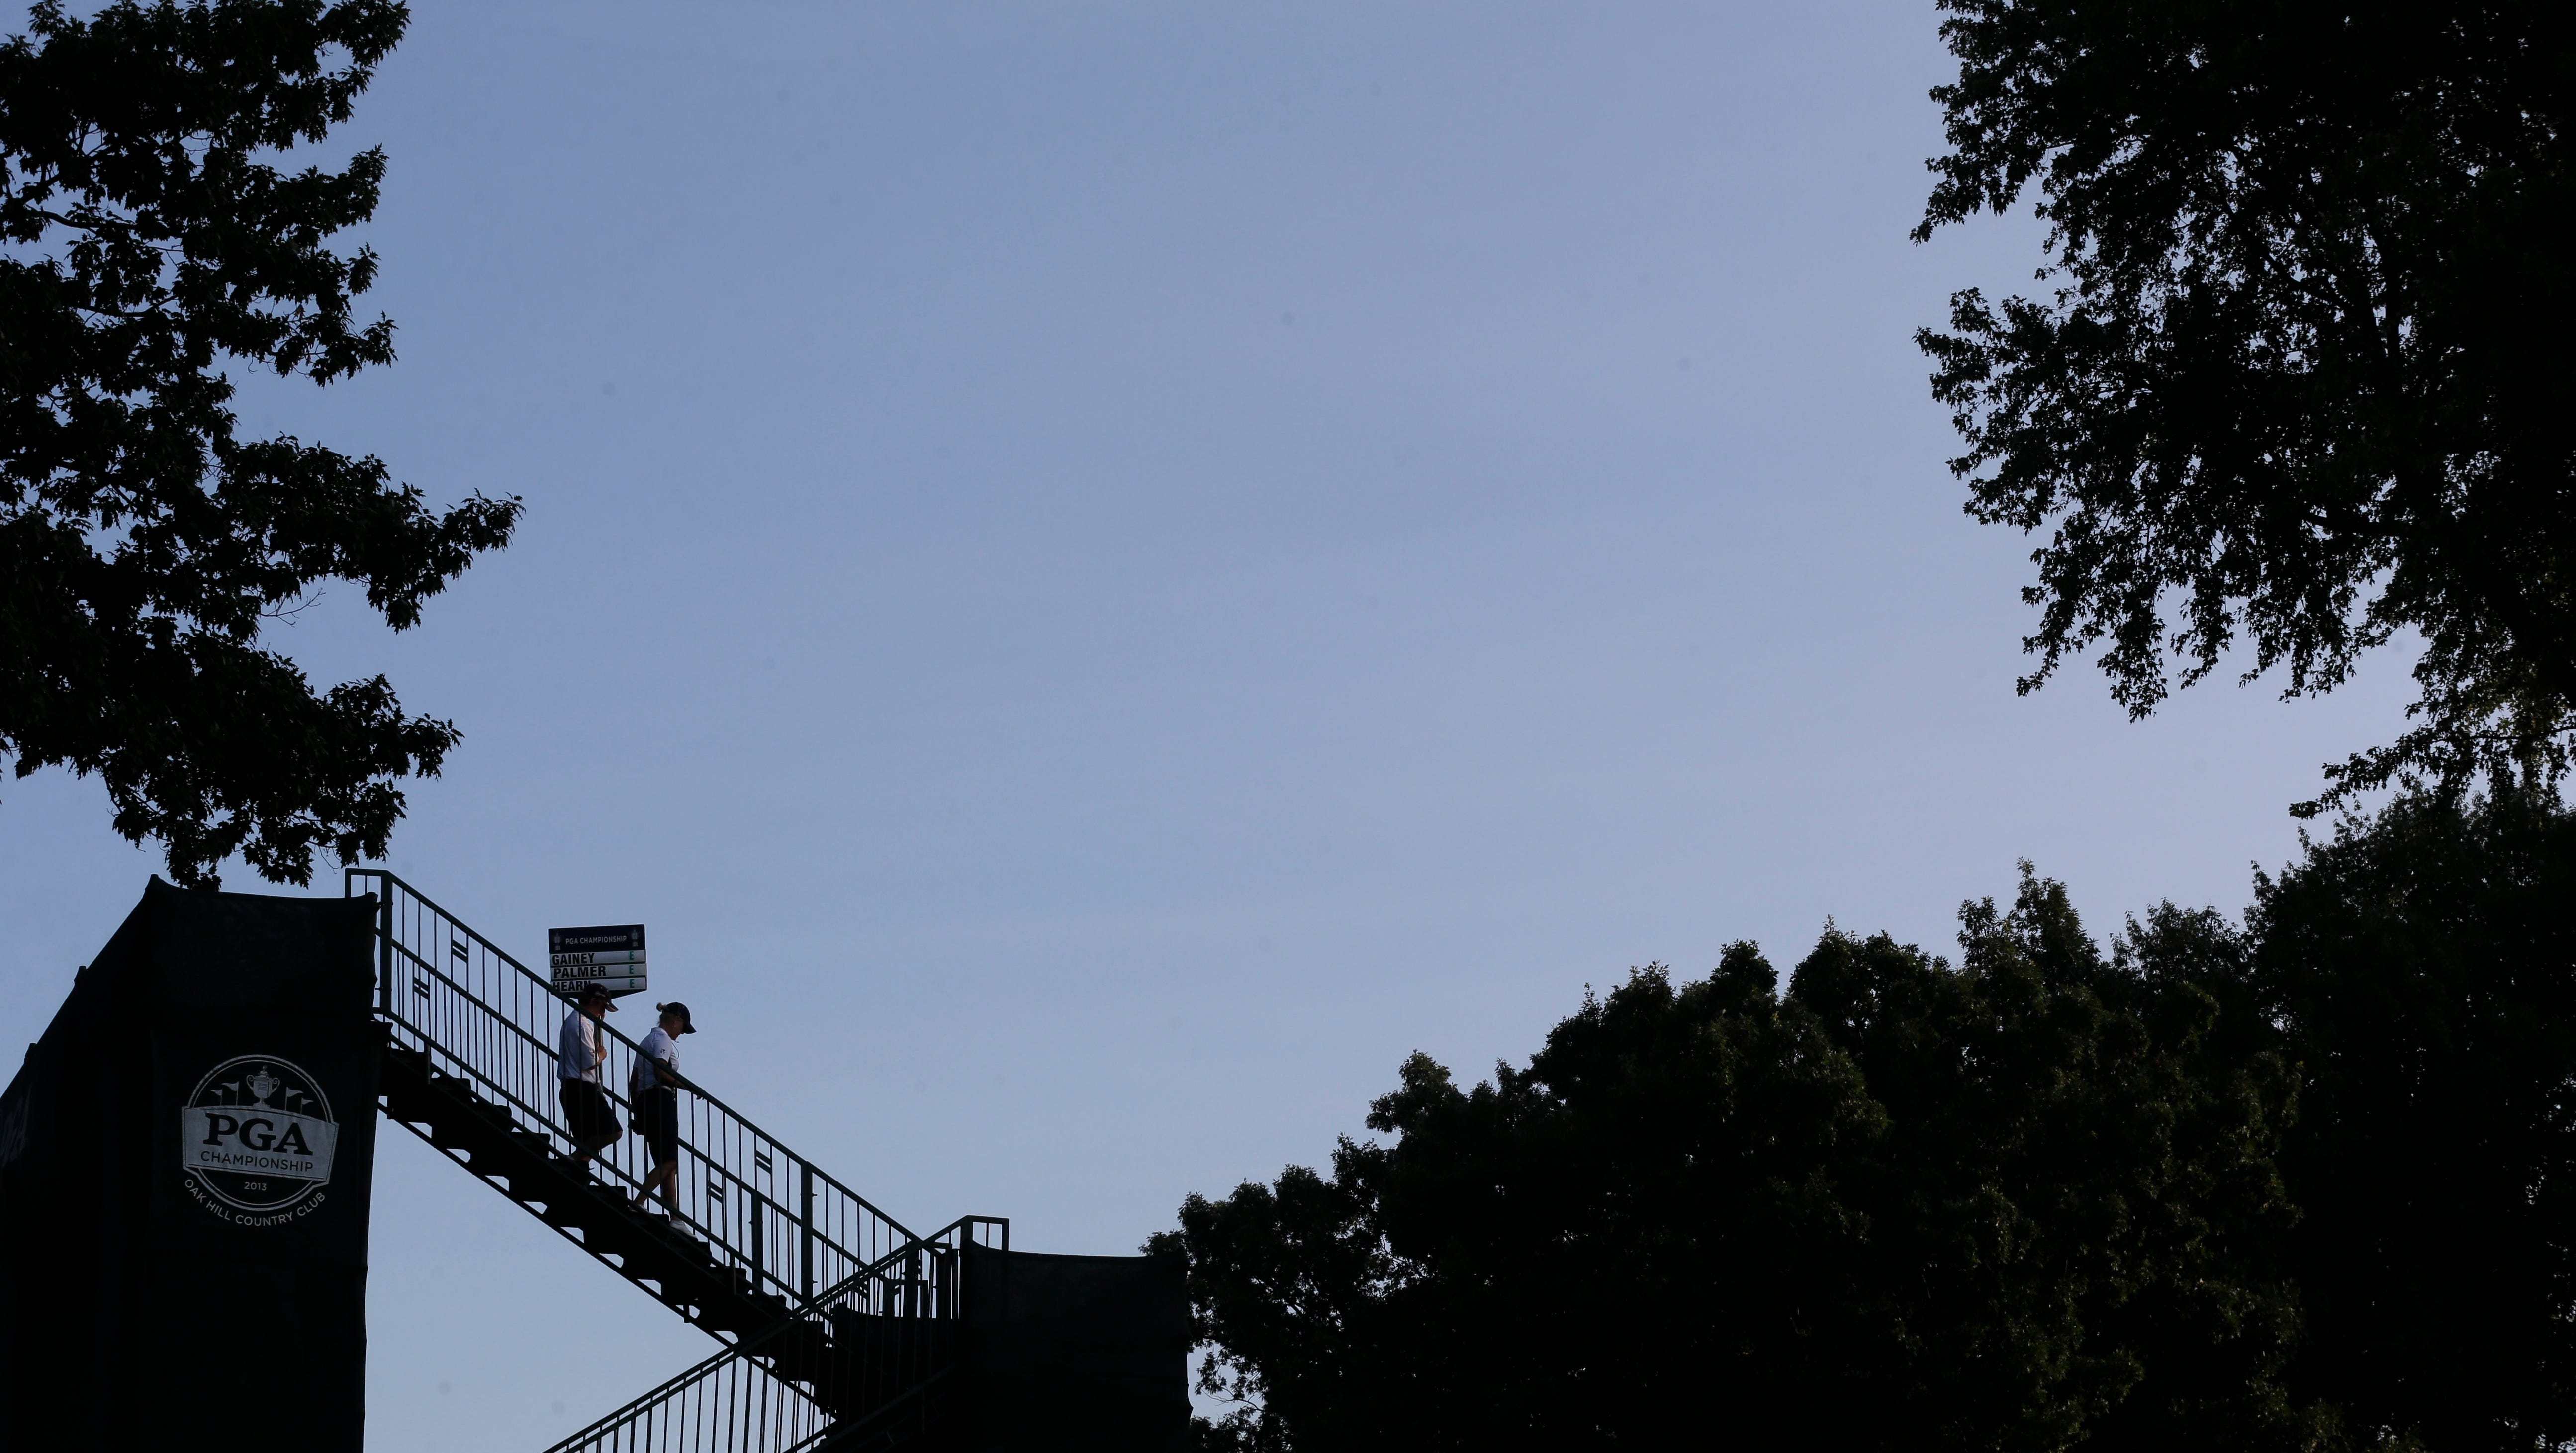 A standard bearer walks to the first tee during the first round of the PGA Championship golf tournament at Oak Hill Country Club.